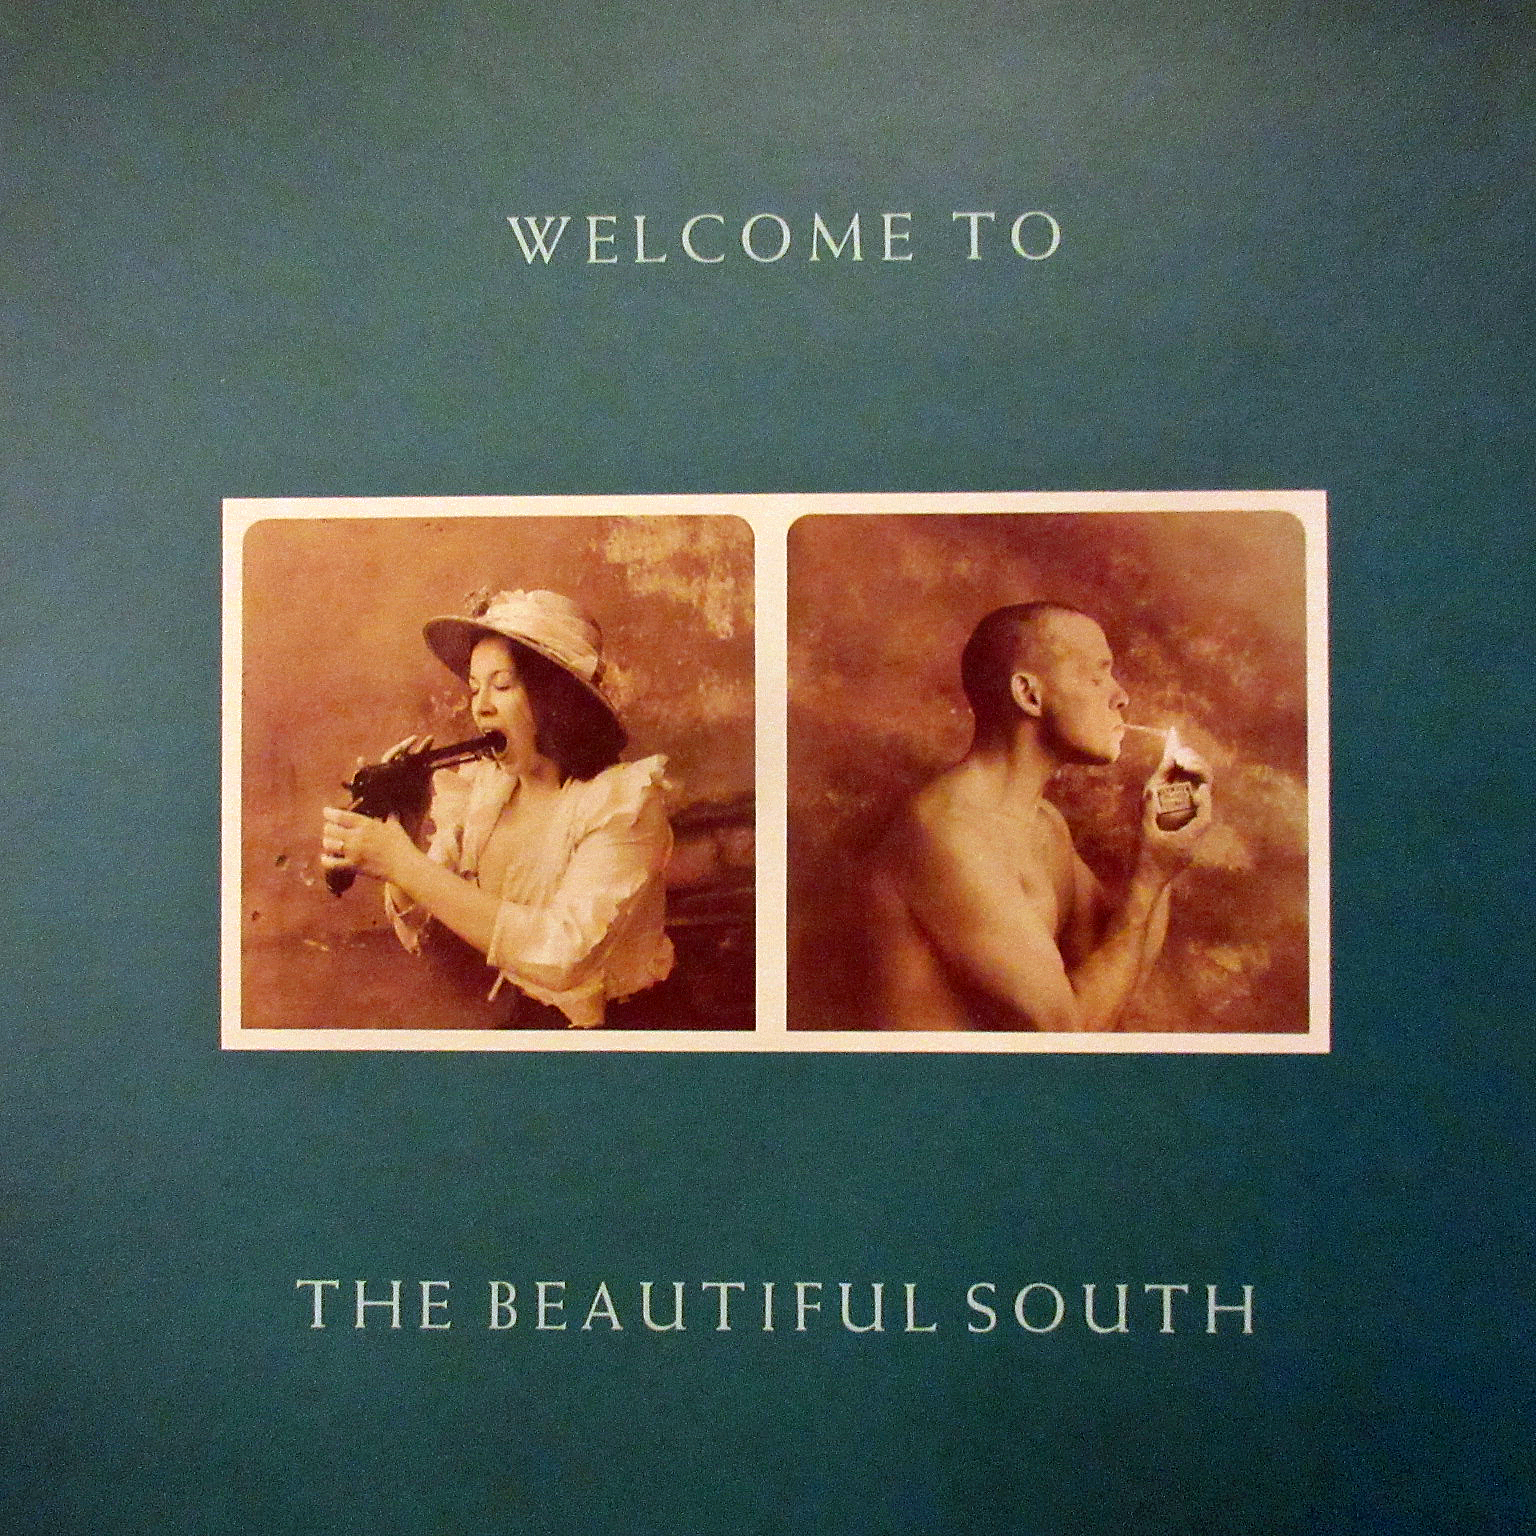 BEAUTIFUL SOUTH / WELCOME TO THE BEAUTIFUL SOUTH